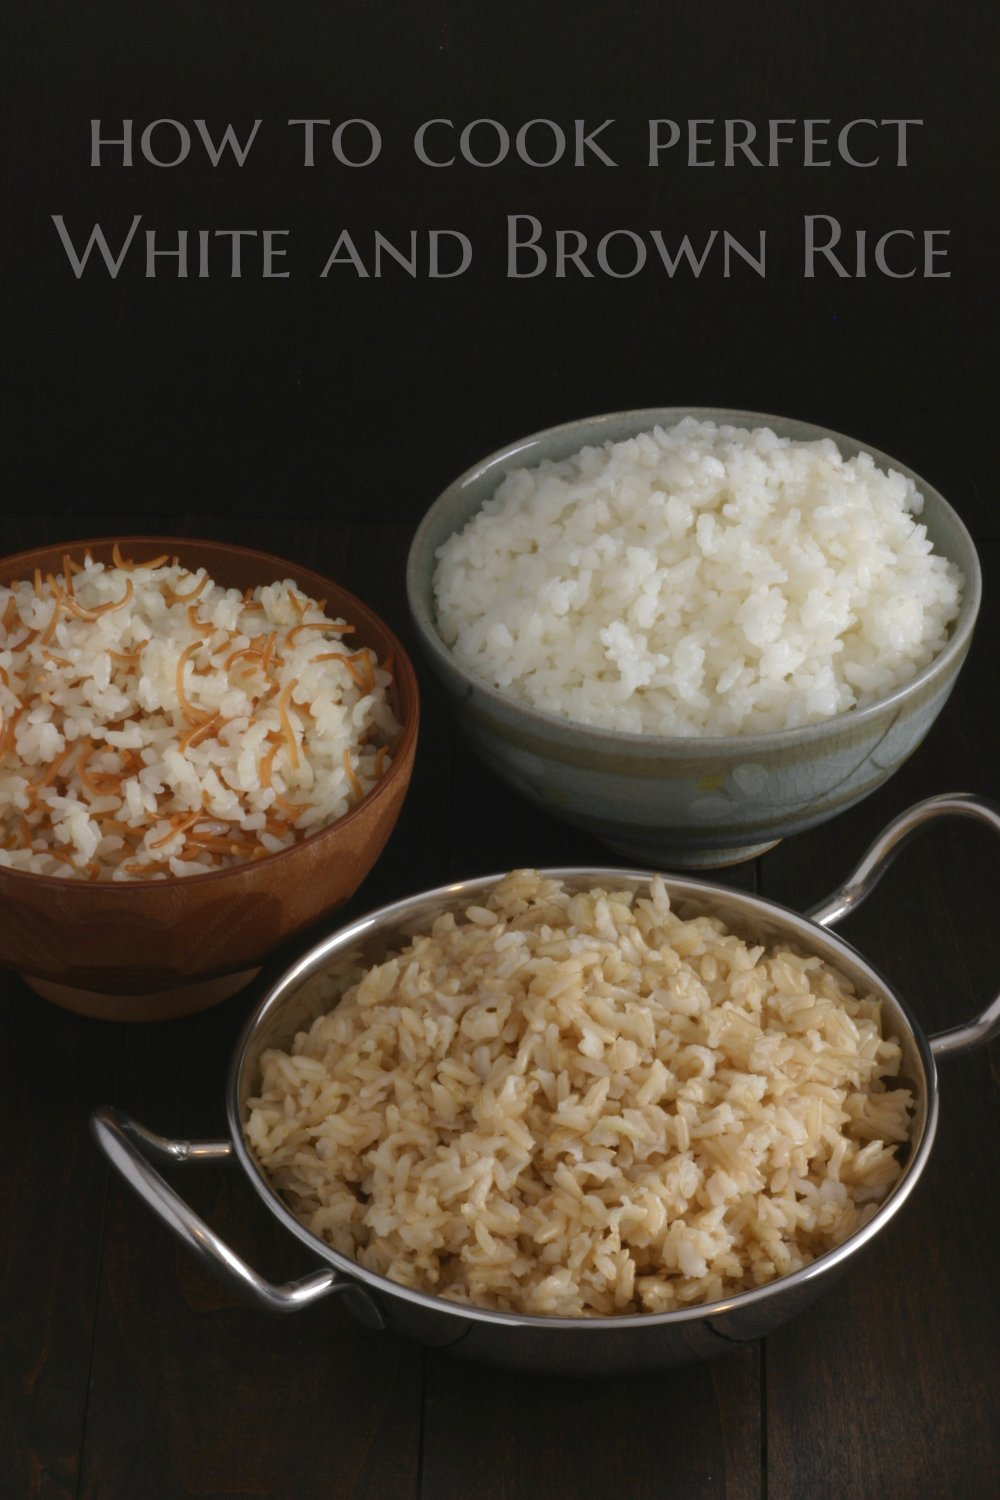 A how-to recipe for cooking the perfect pot of basic white and brown rice.